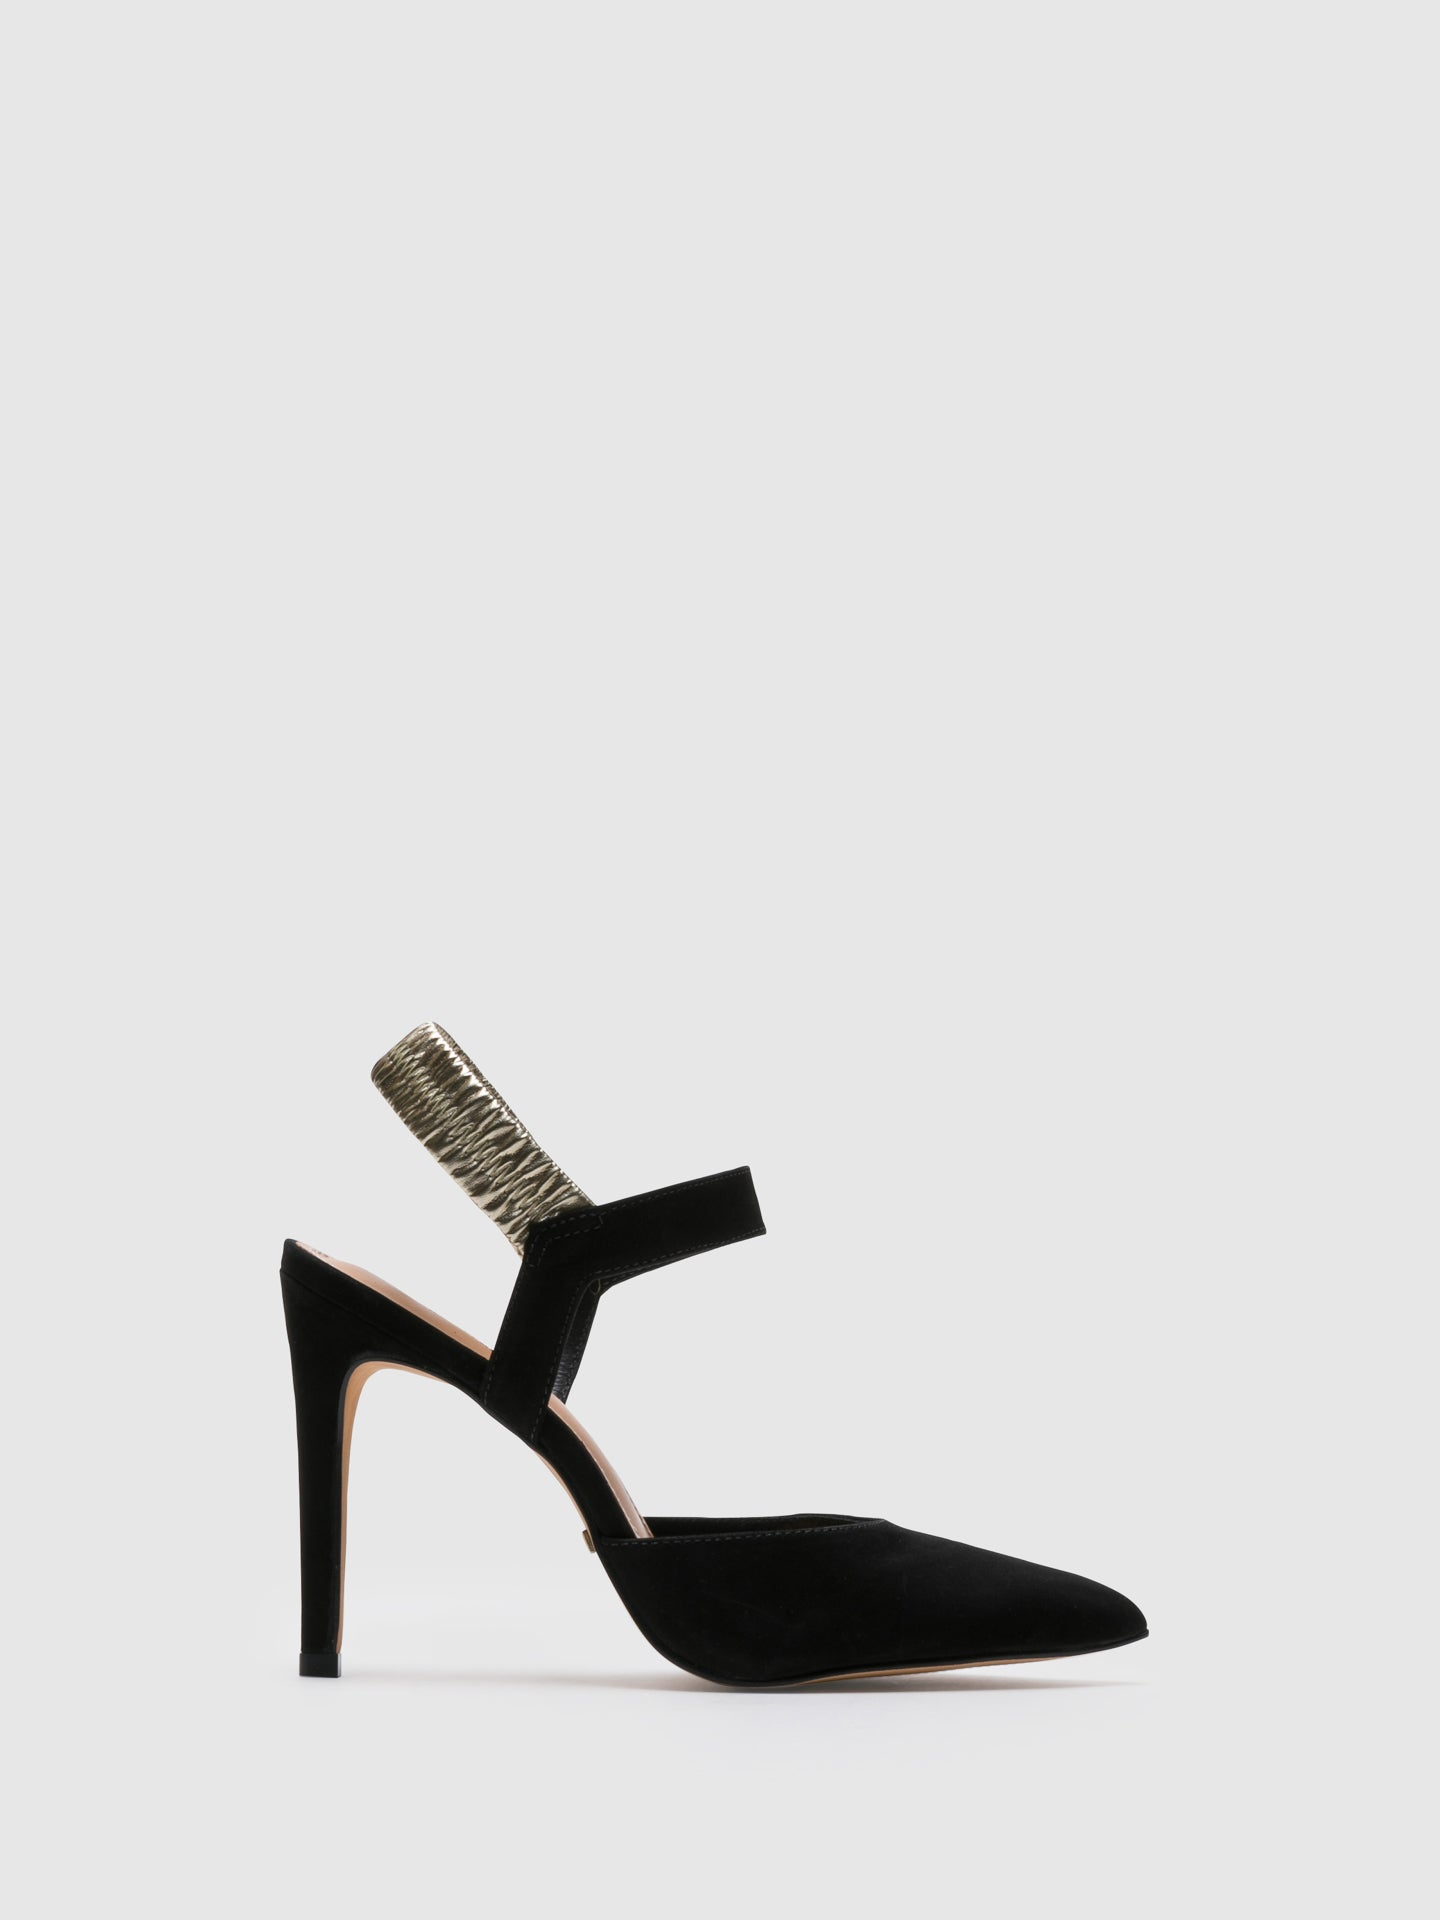 Parodi Passion Black Sling-Back Pumps Sandals